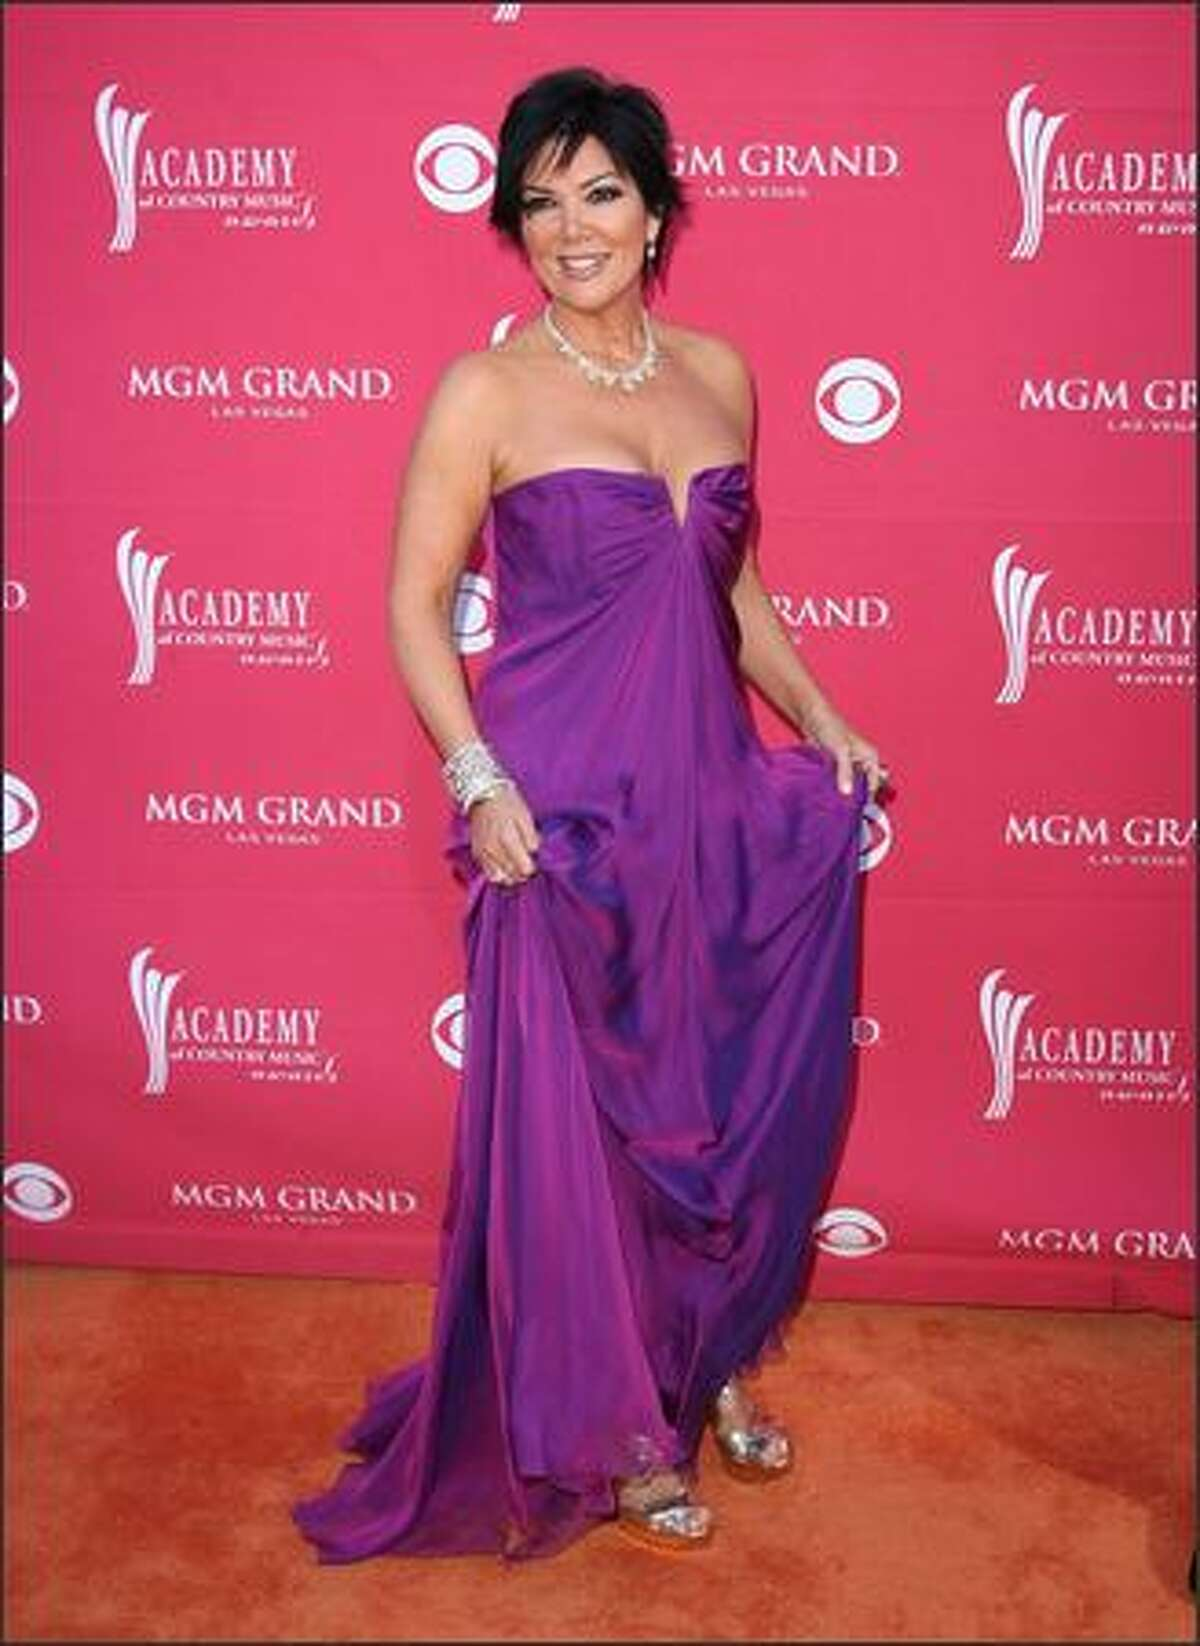 TV personality Kris Jenner arrives at the 44th annual Academy Of Country Music Awards held at the MGM Grand in Las Vegas.